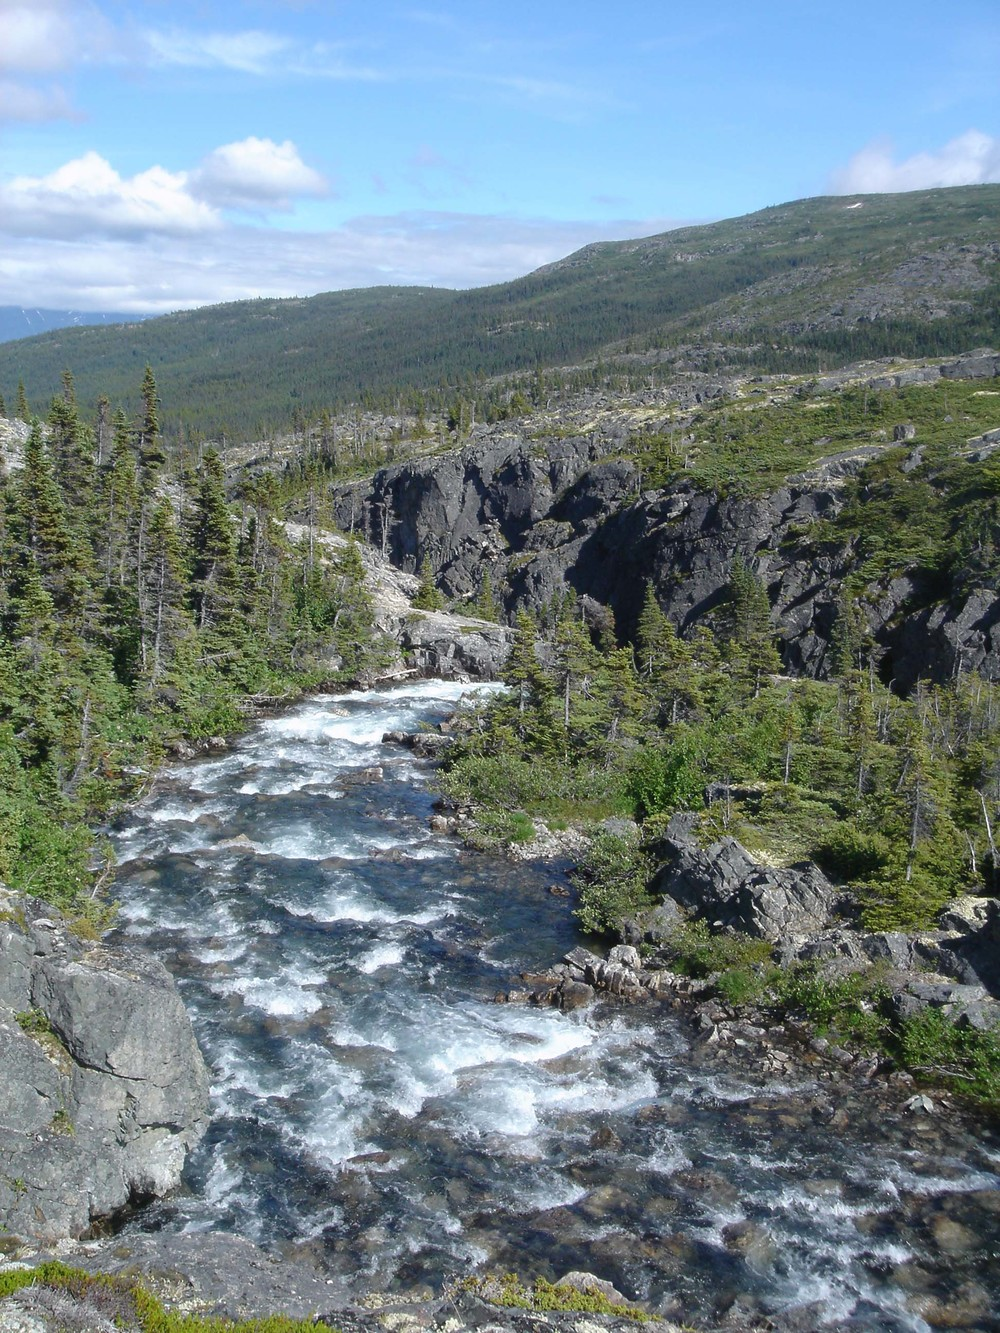 The Chilkoot Trail follows great northern rivers through British Columbia.